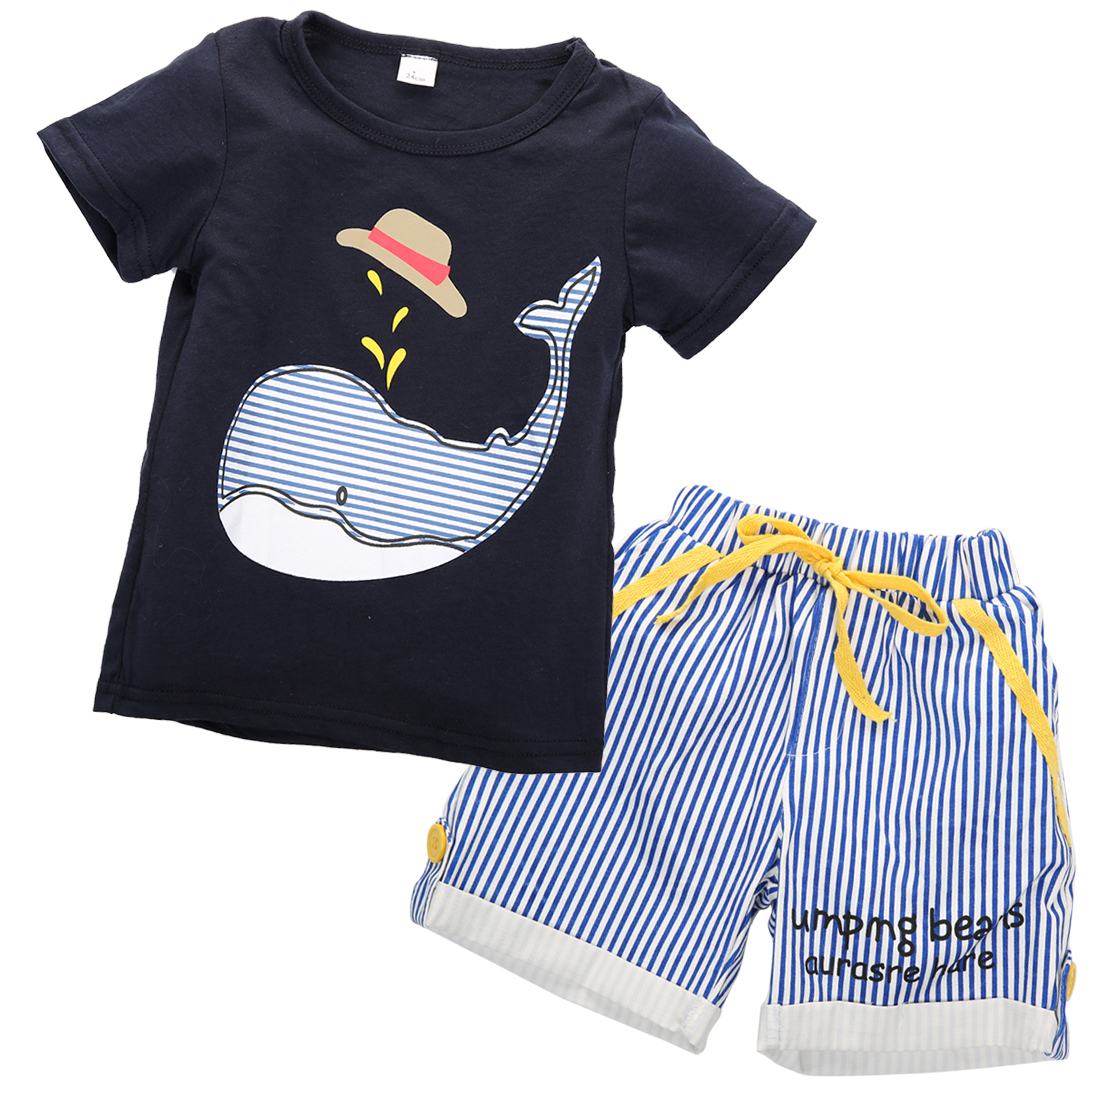 2017 2Pcs New Toddler Kids Boys Cloth Sets Summer Short Sleeve T-shirt Tops+ Shorts Outfits Set Age 1-7Y